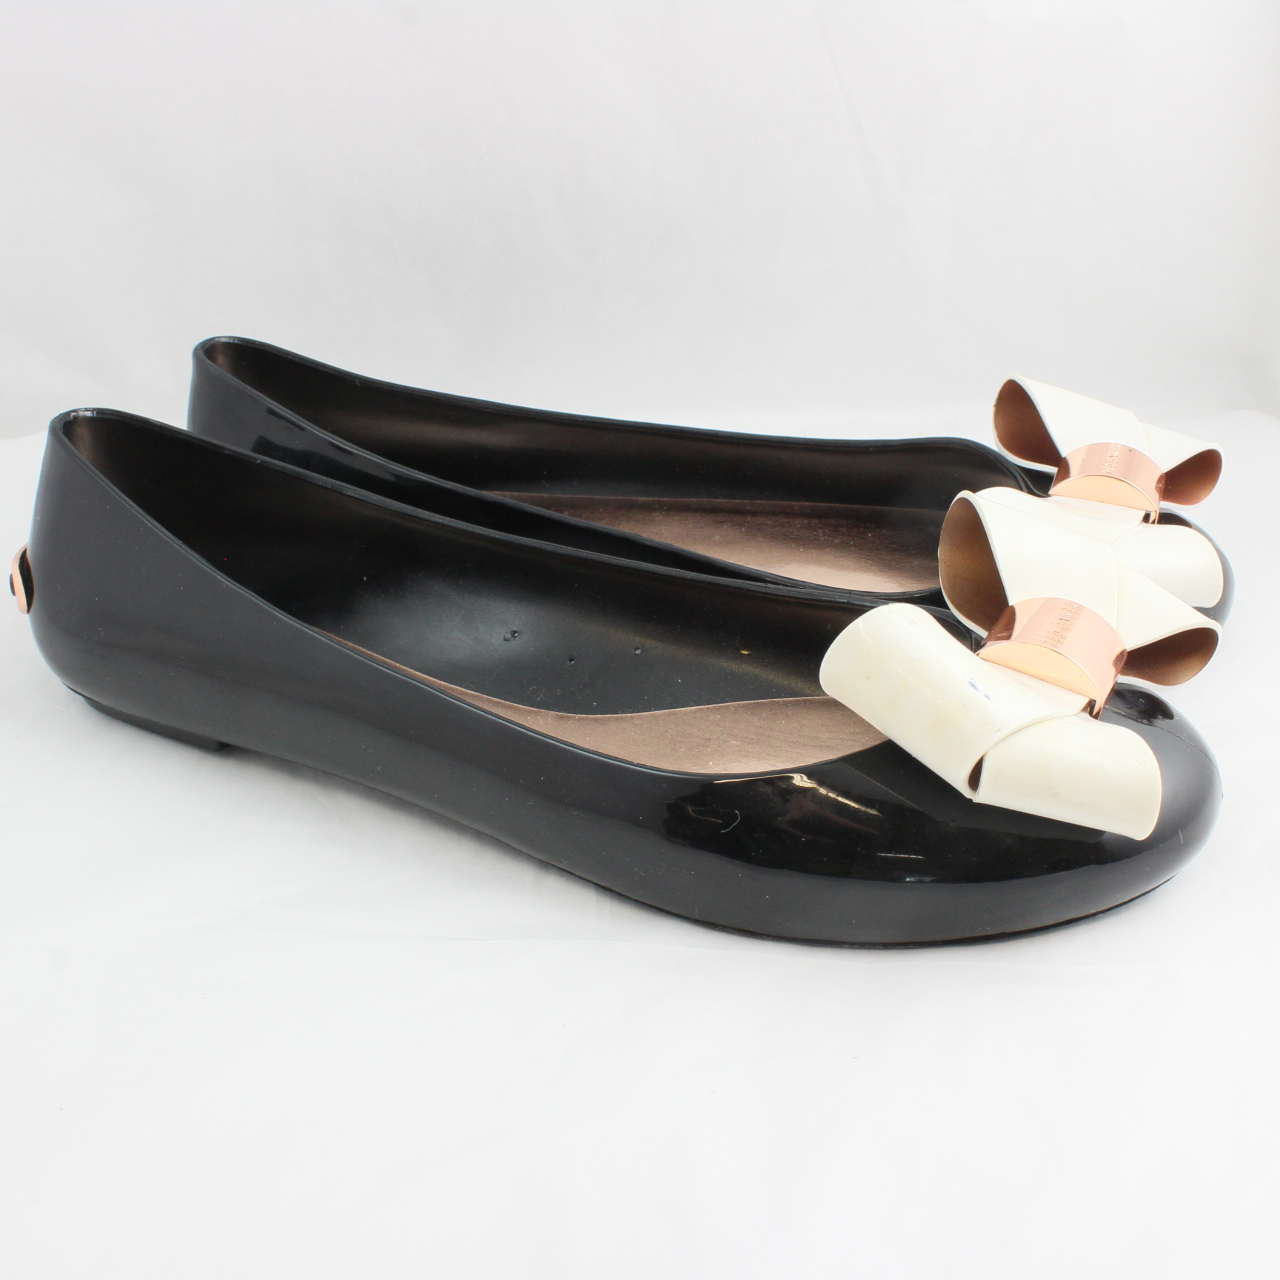 dbd096d95 Sentinel Thumbnail 3. Sentinel Womens Ted Baker Black Synthetic Slip On  Ballerinas Size UK ...